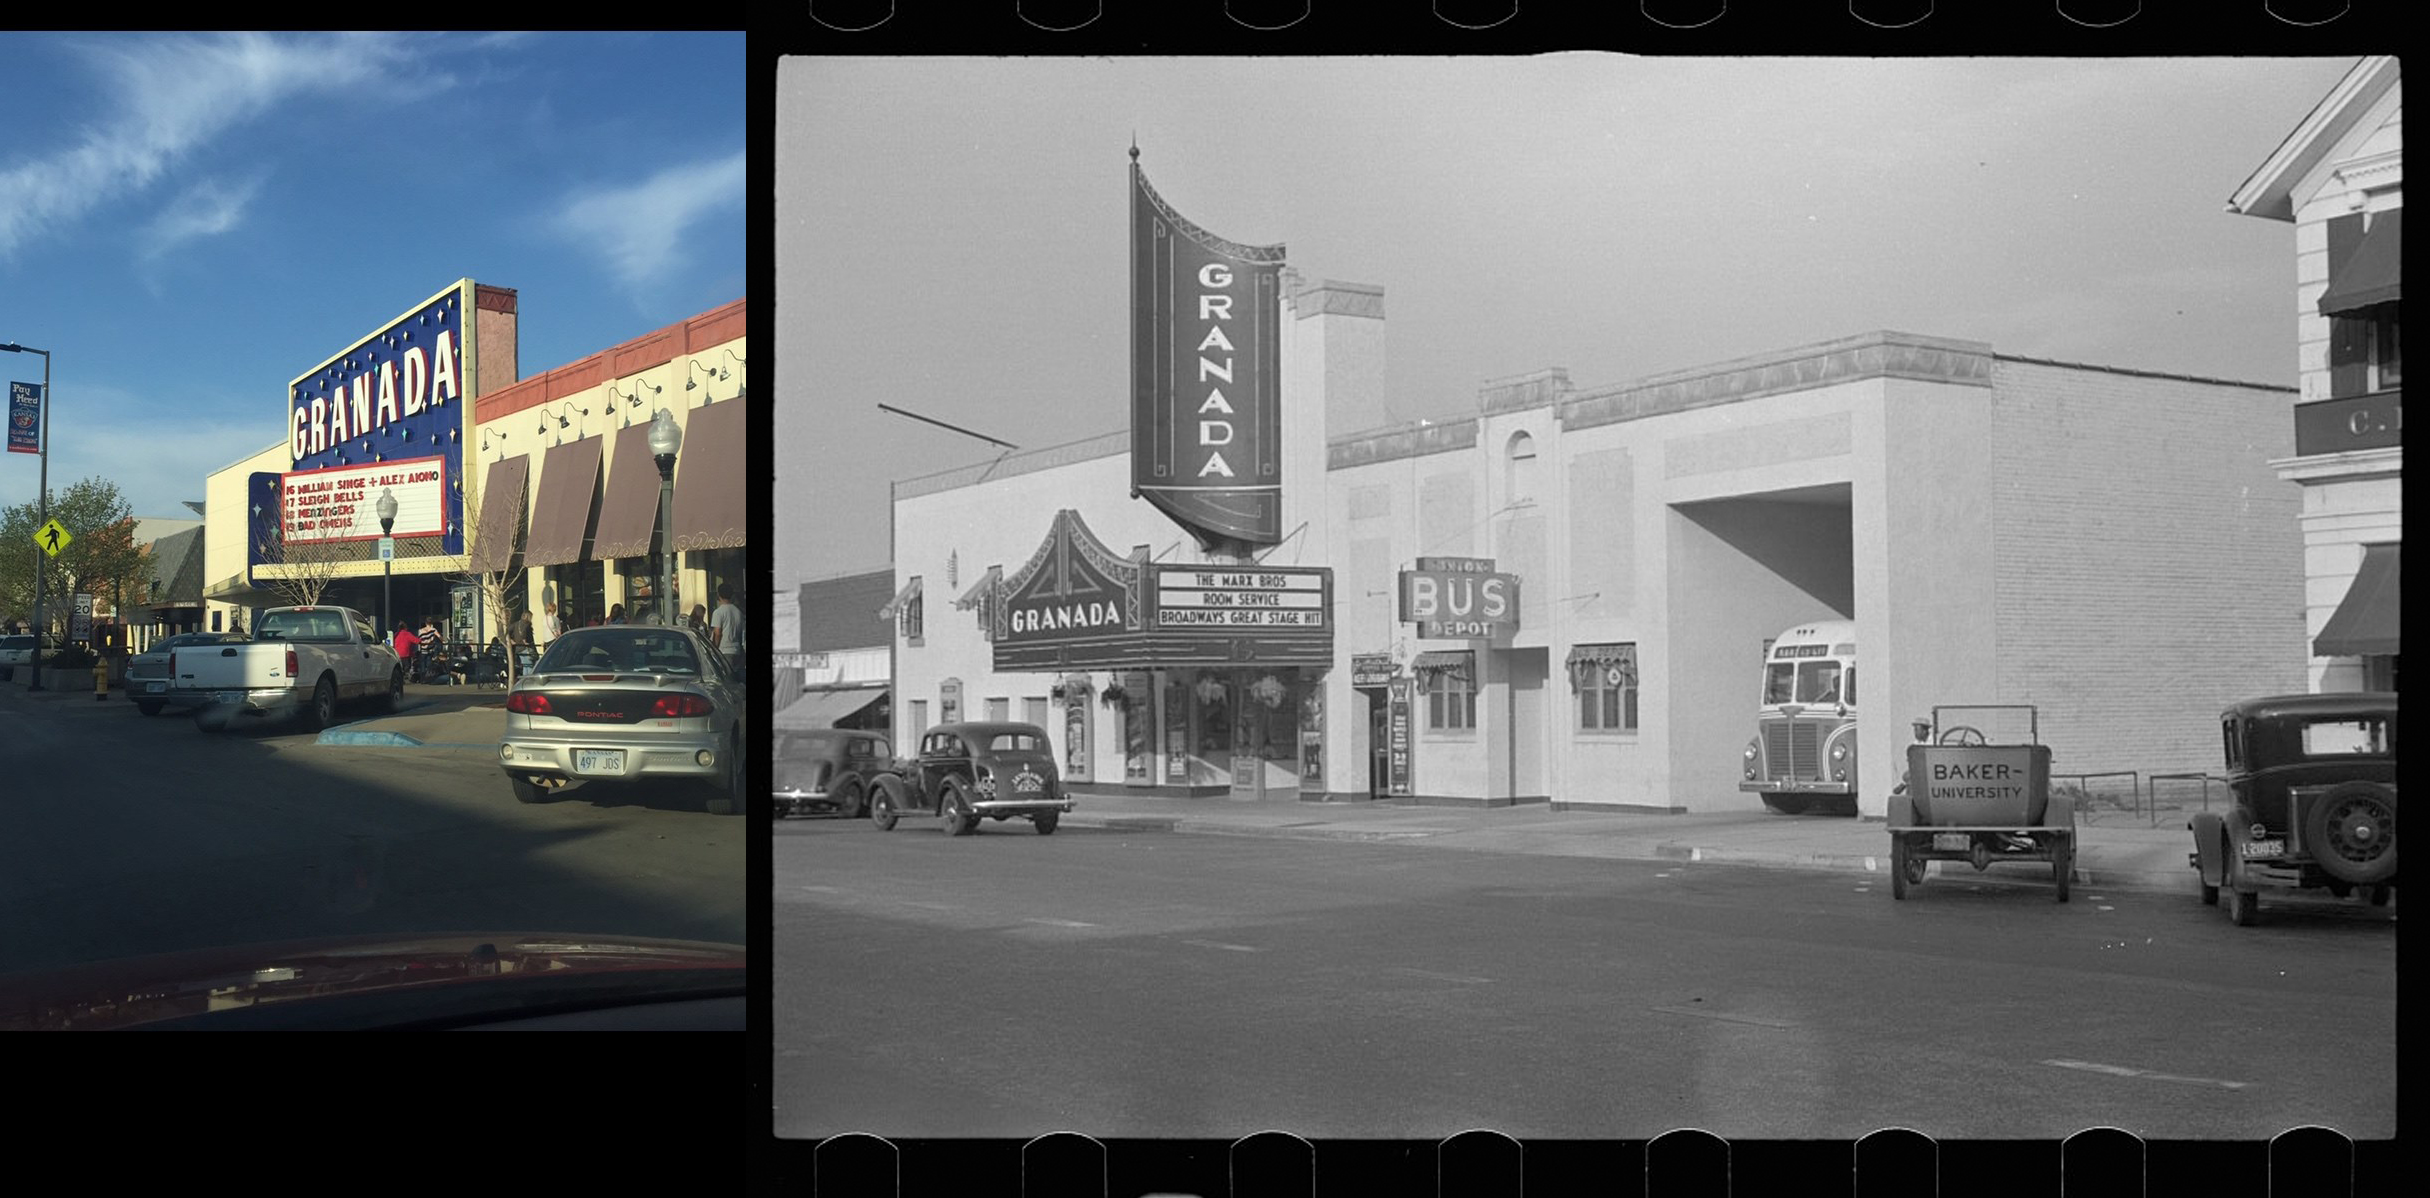 The Granada was a theater that showed films from the 1930s until the late 1990s. Now, it is a live venue for shows and concerts. (Photo credit: Hannah Cruise and Farm Security Administration — Office of War Information Photograph Collection from Library of Congress)